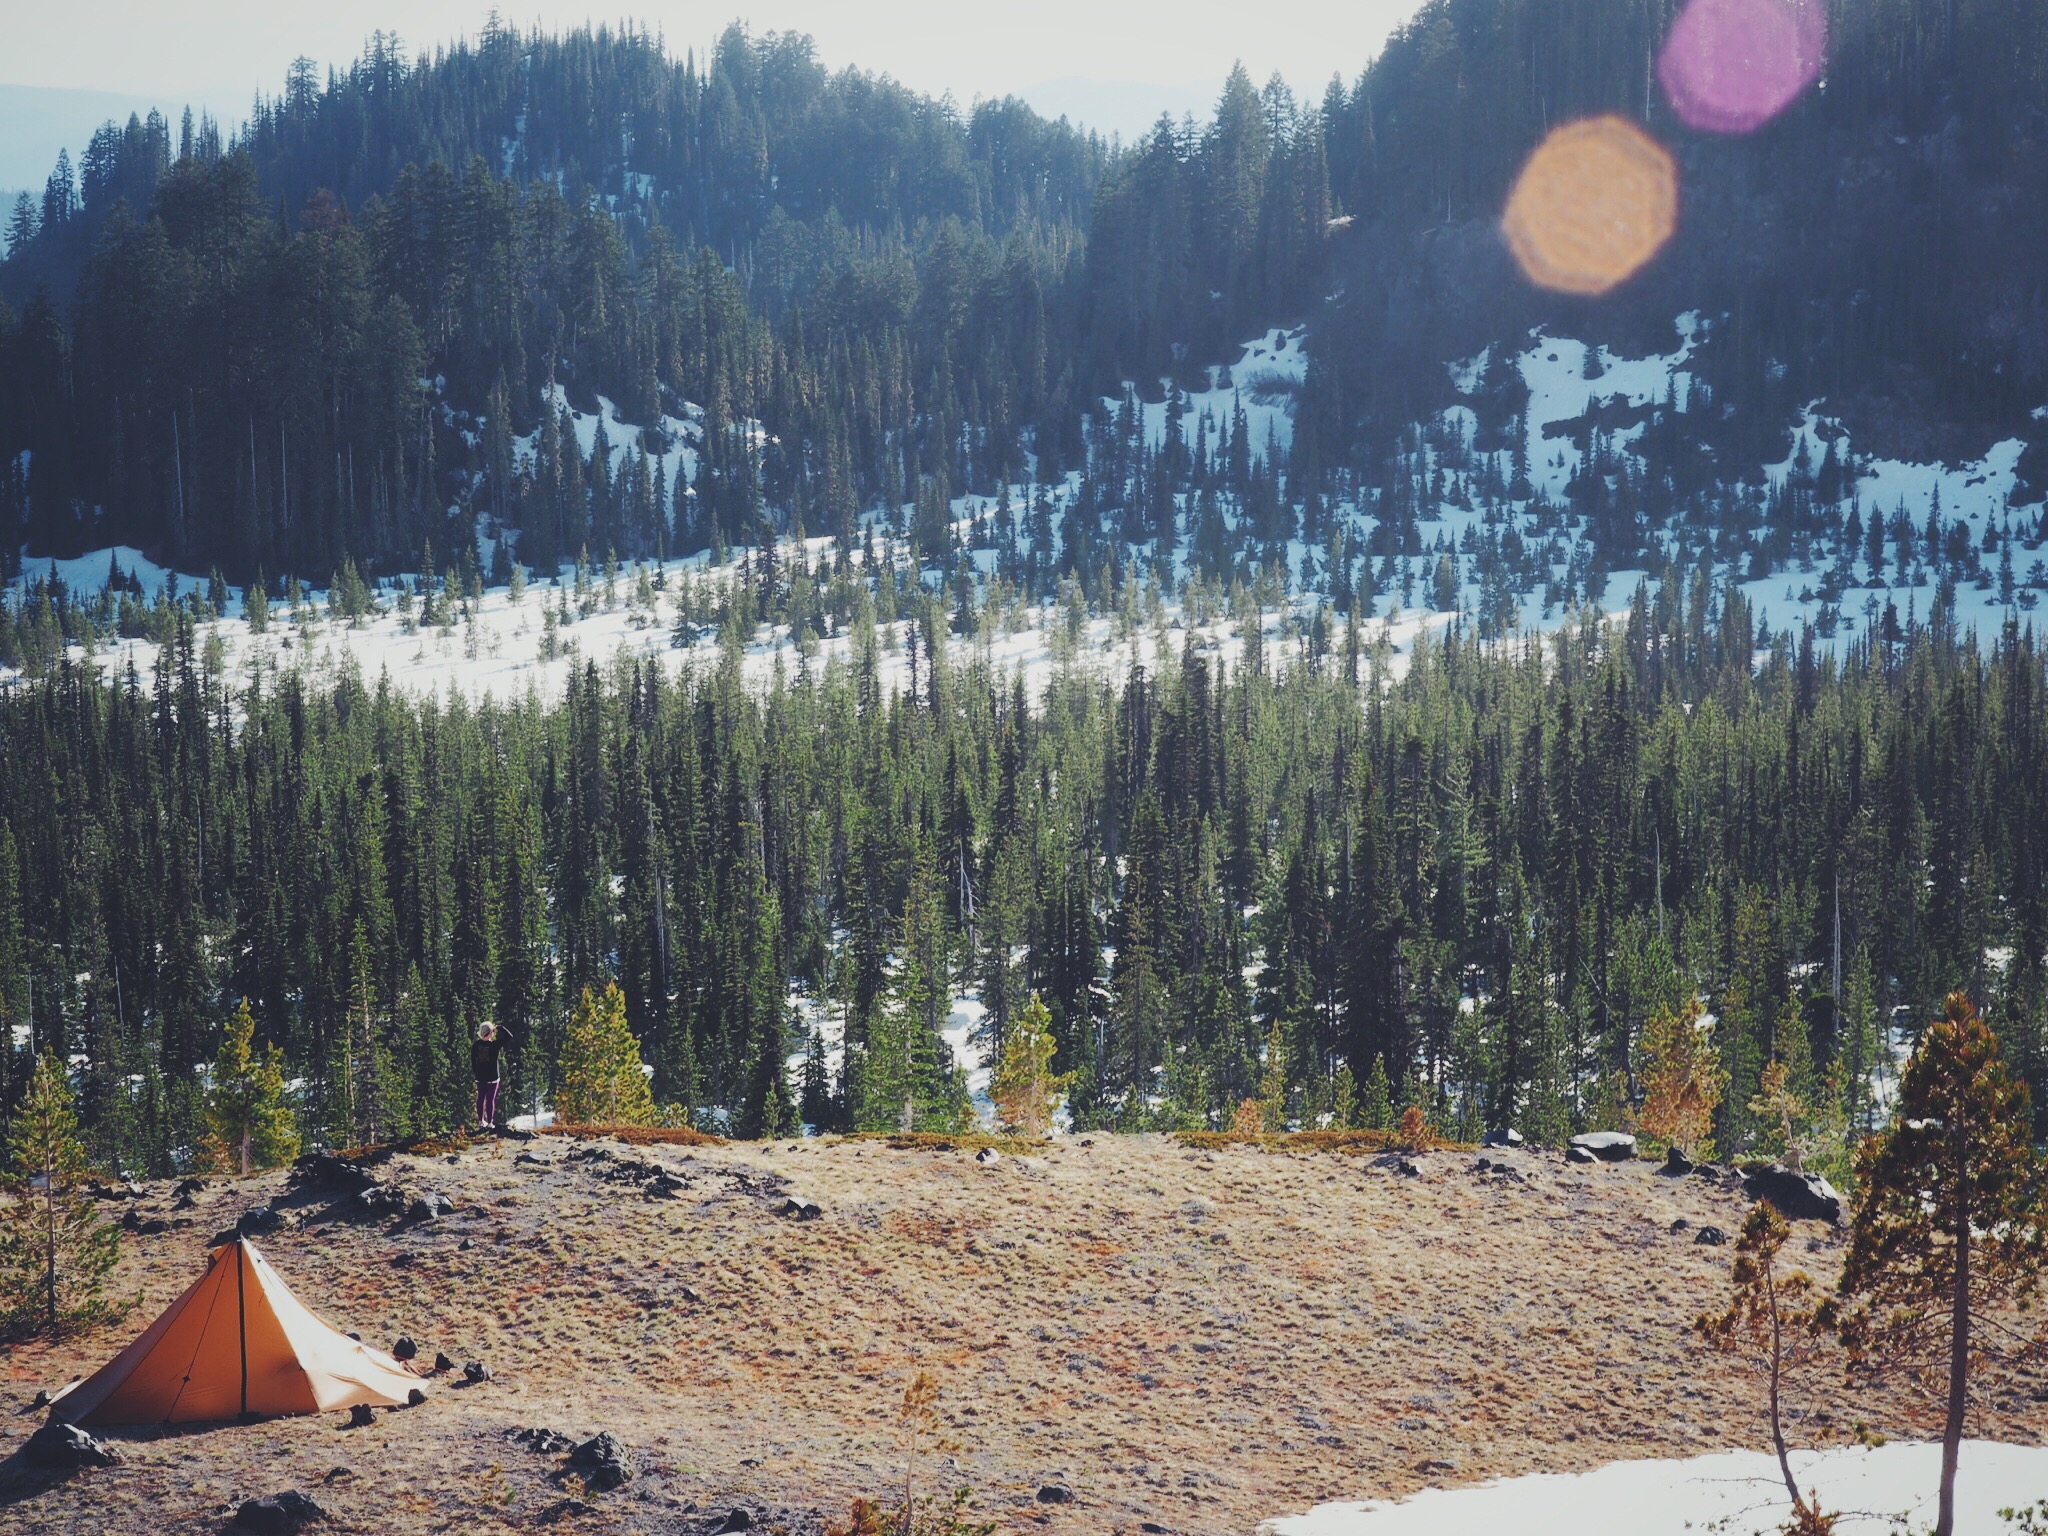 King of the Mountain? The Seek Outside Redcliff overlooking the valley floor. Love this tent!